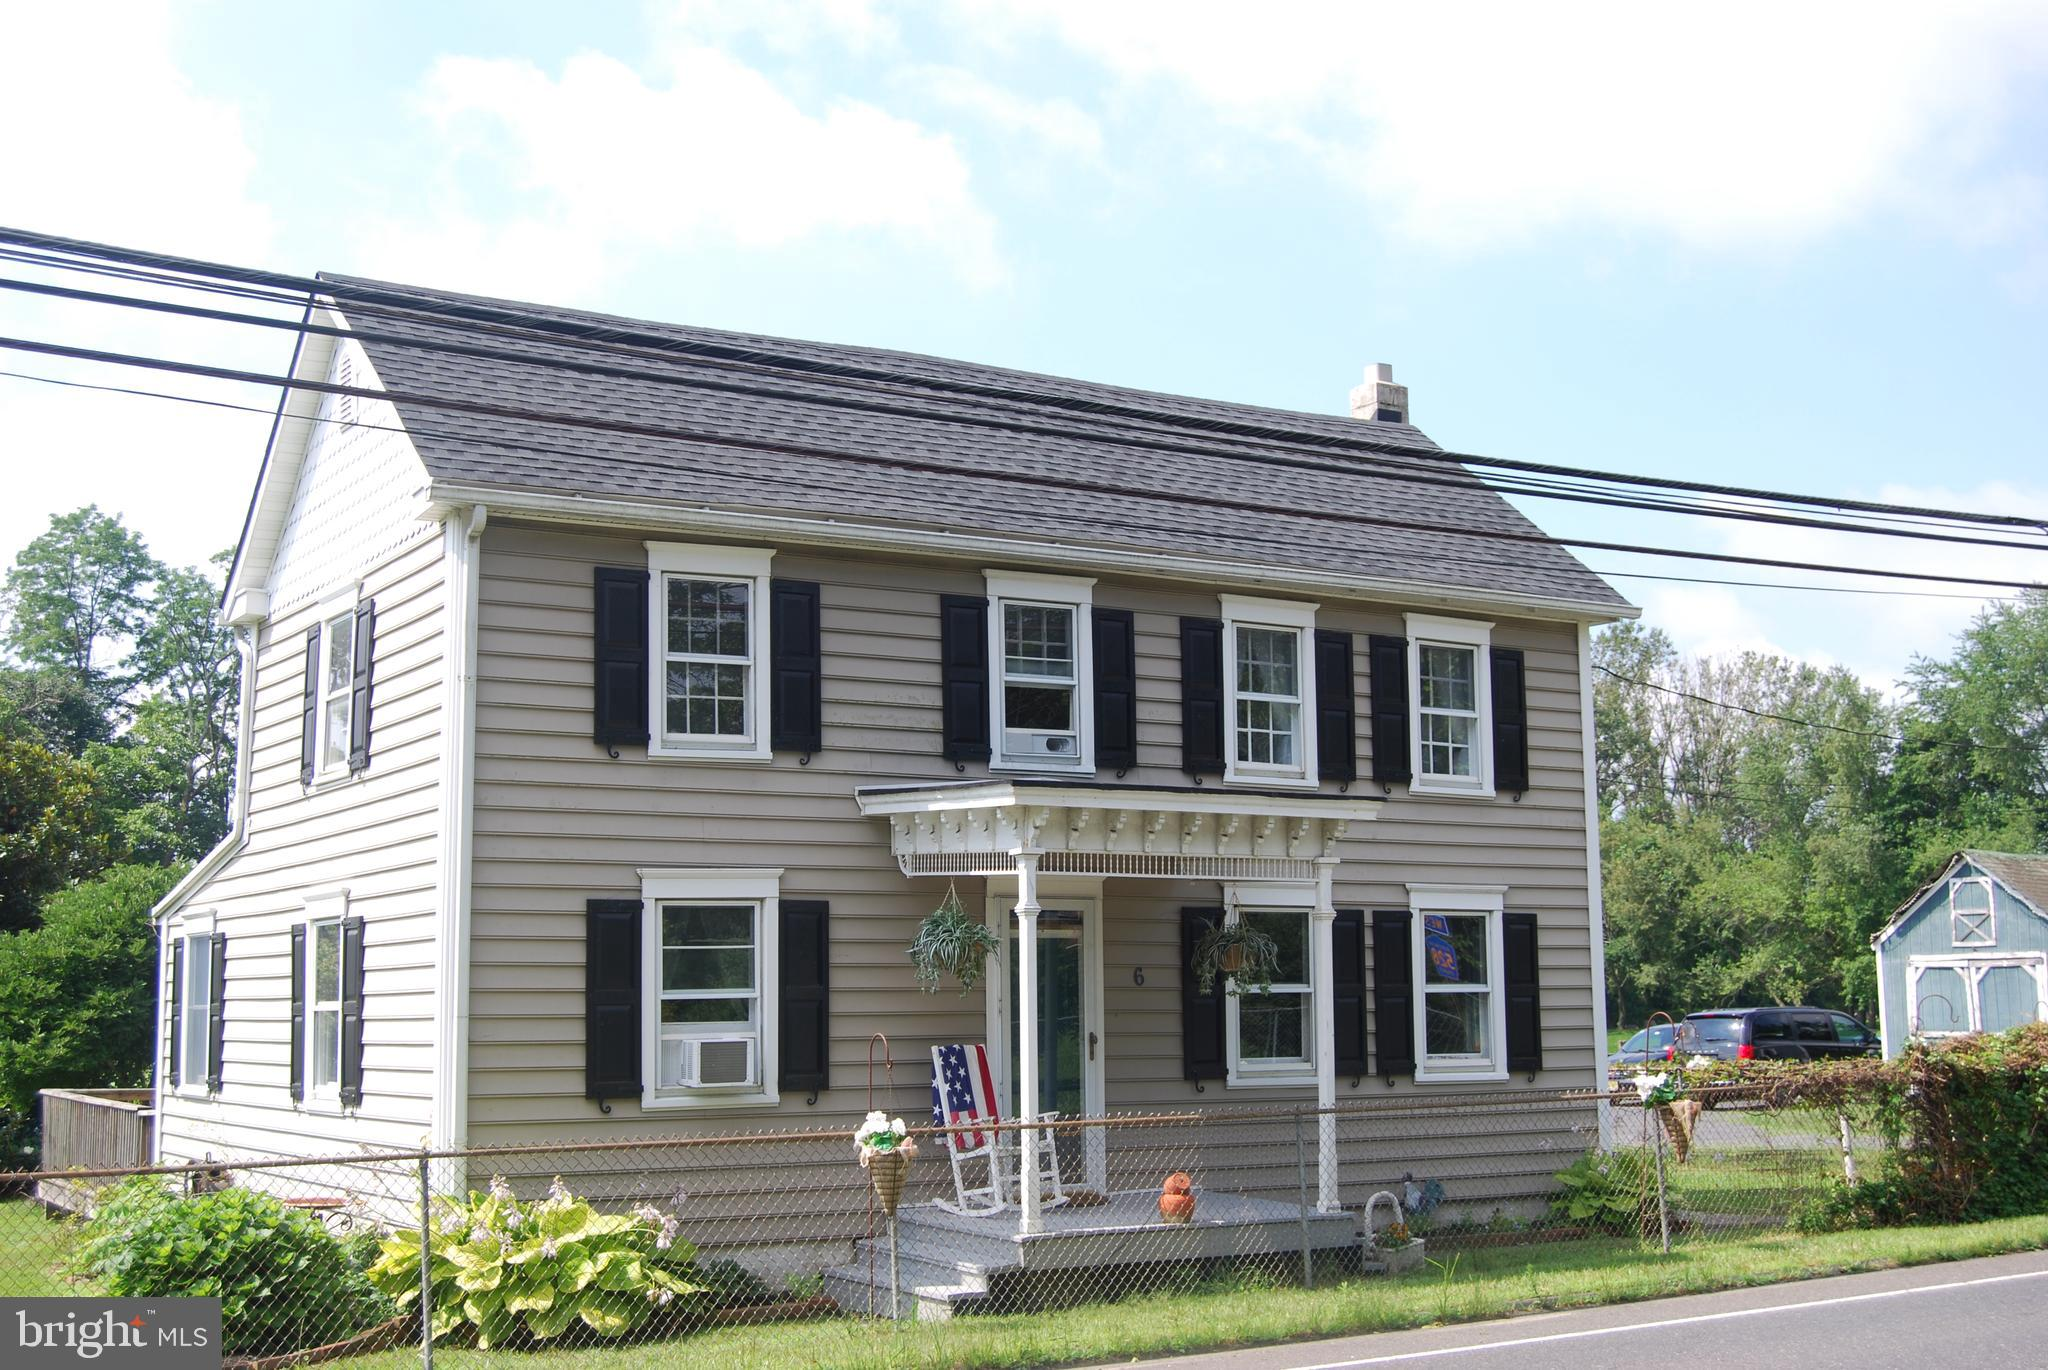 6 CHESTERFIELD JACOBSTOWN RD., WRIGHTSTOWN, NJ 08562